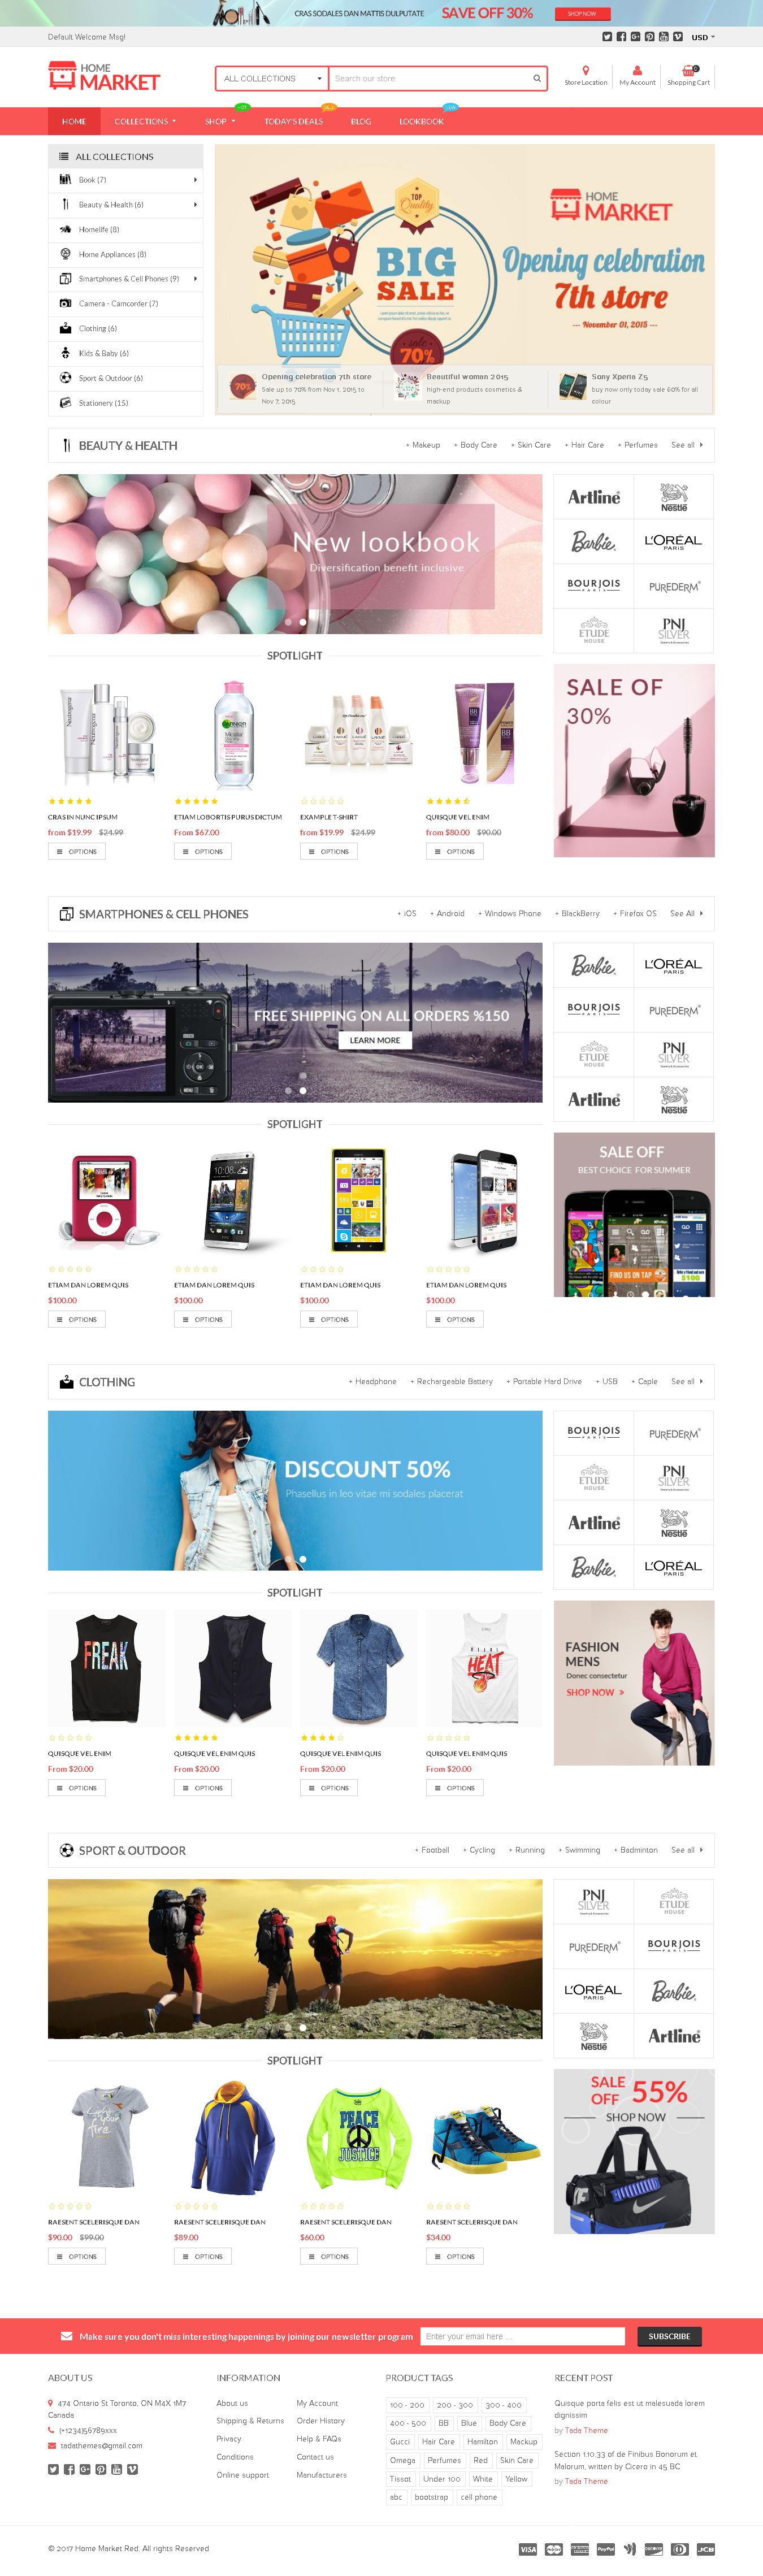 5 Best SHOPIFY Premium Themes Collection for large inventory Stores 2017 - Home Market-Flexible Shopify Theme